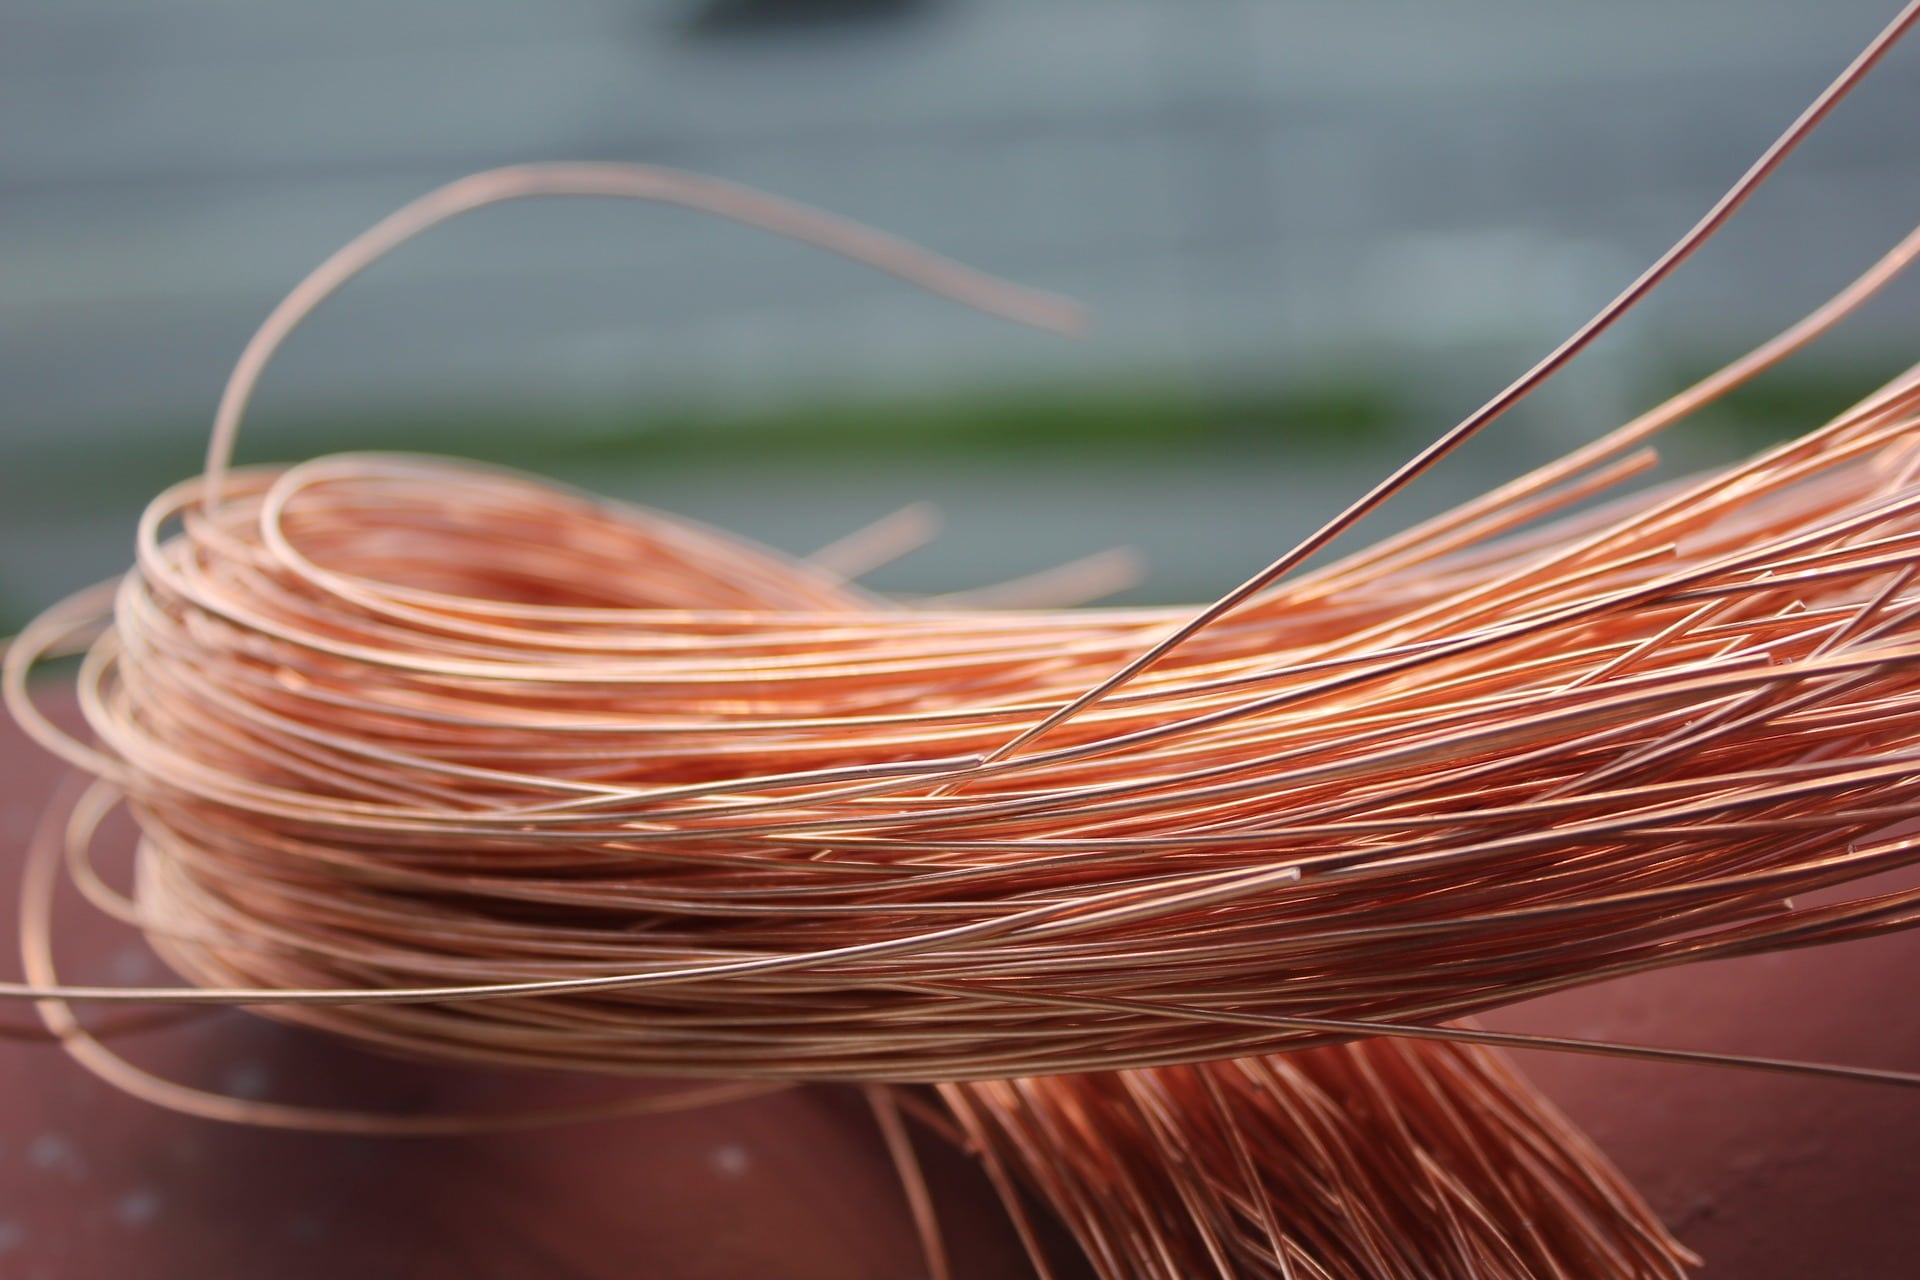 LME copper hits all-time high on tight supply, demand hopes